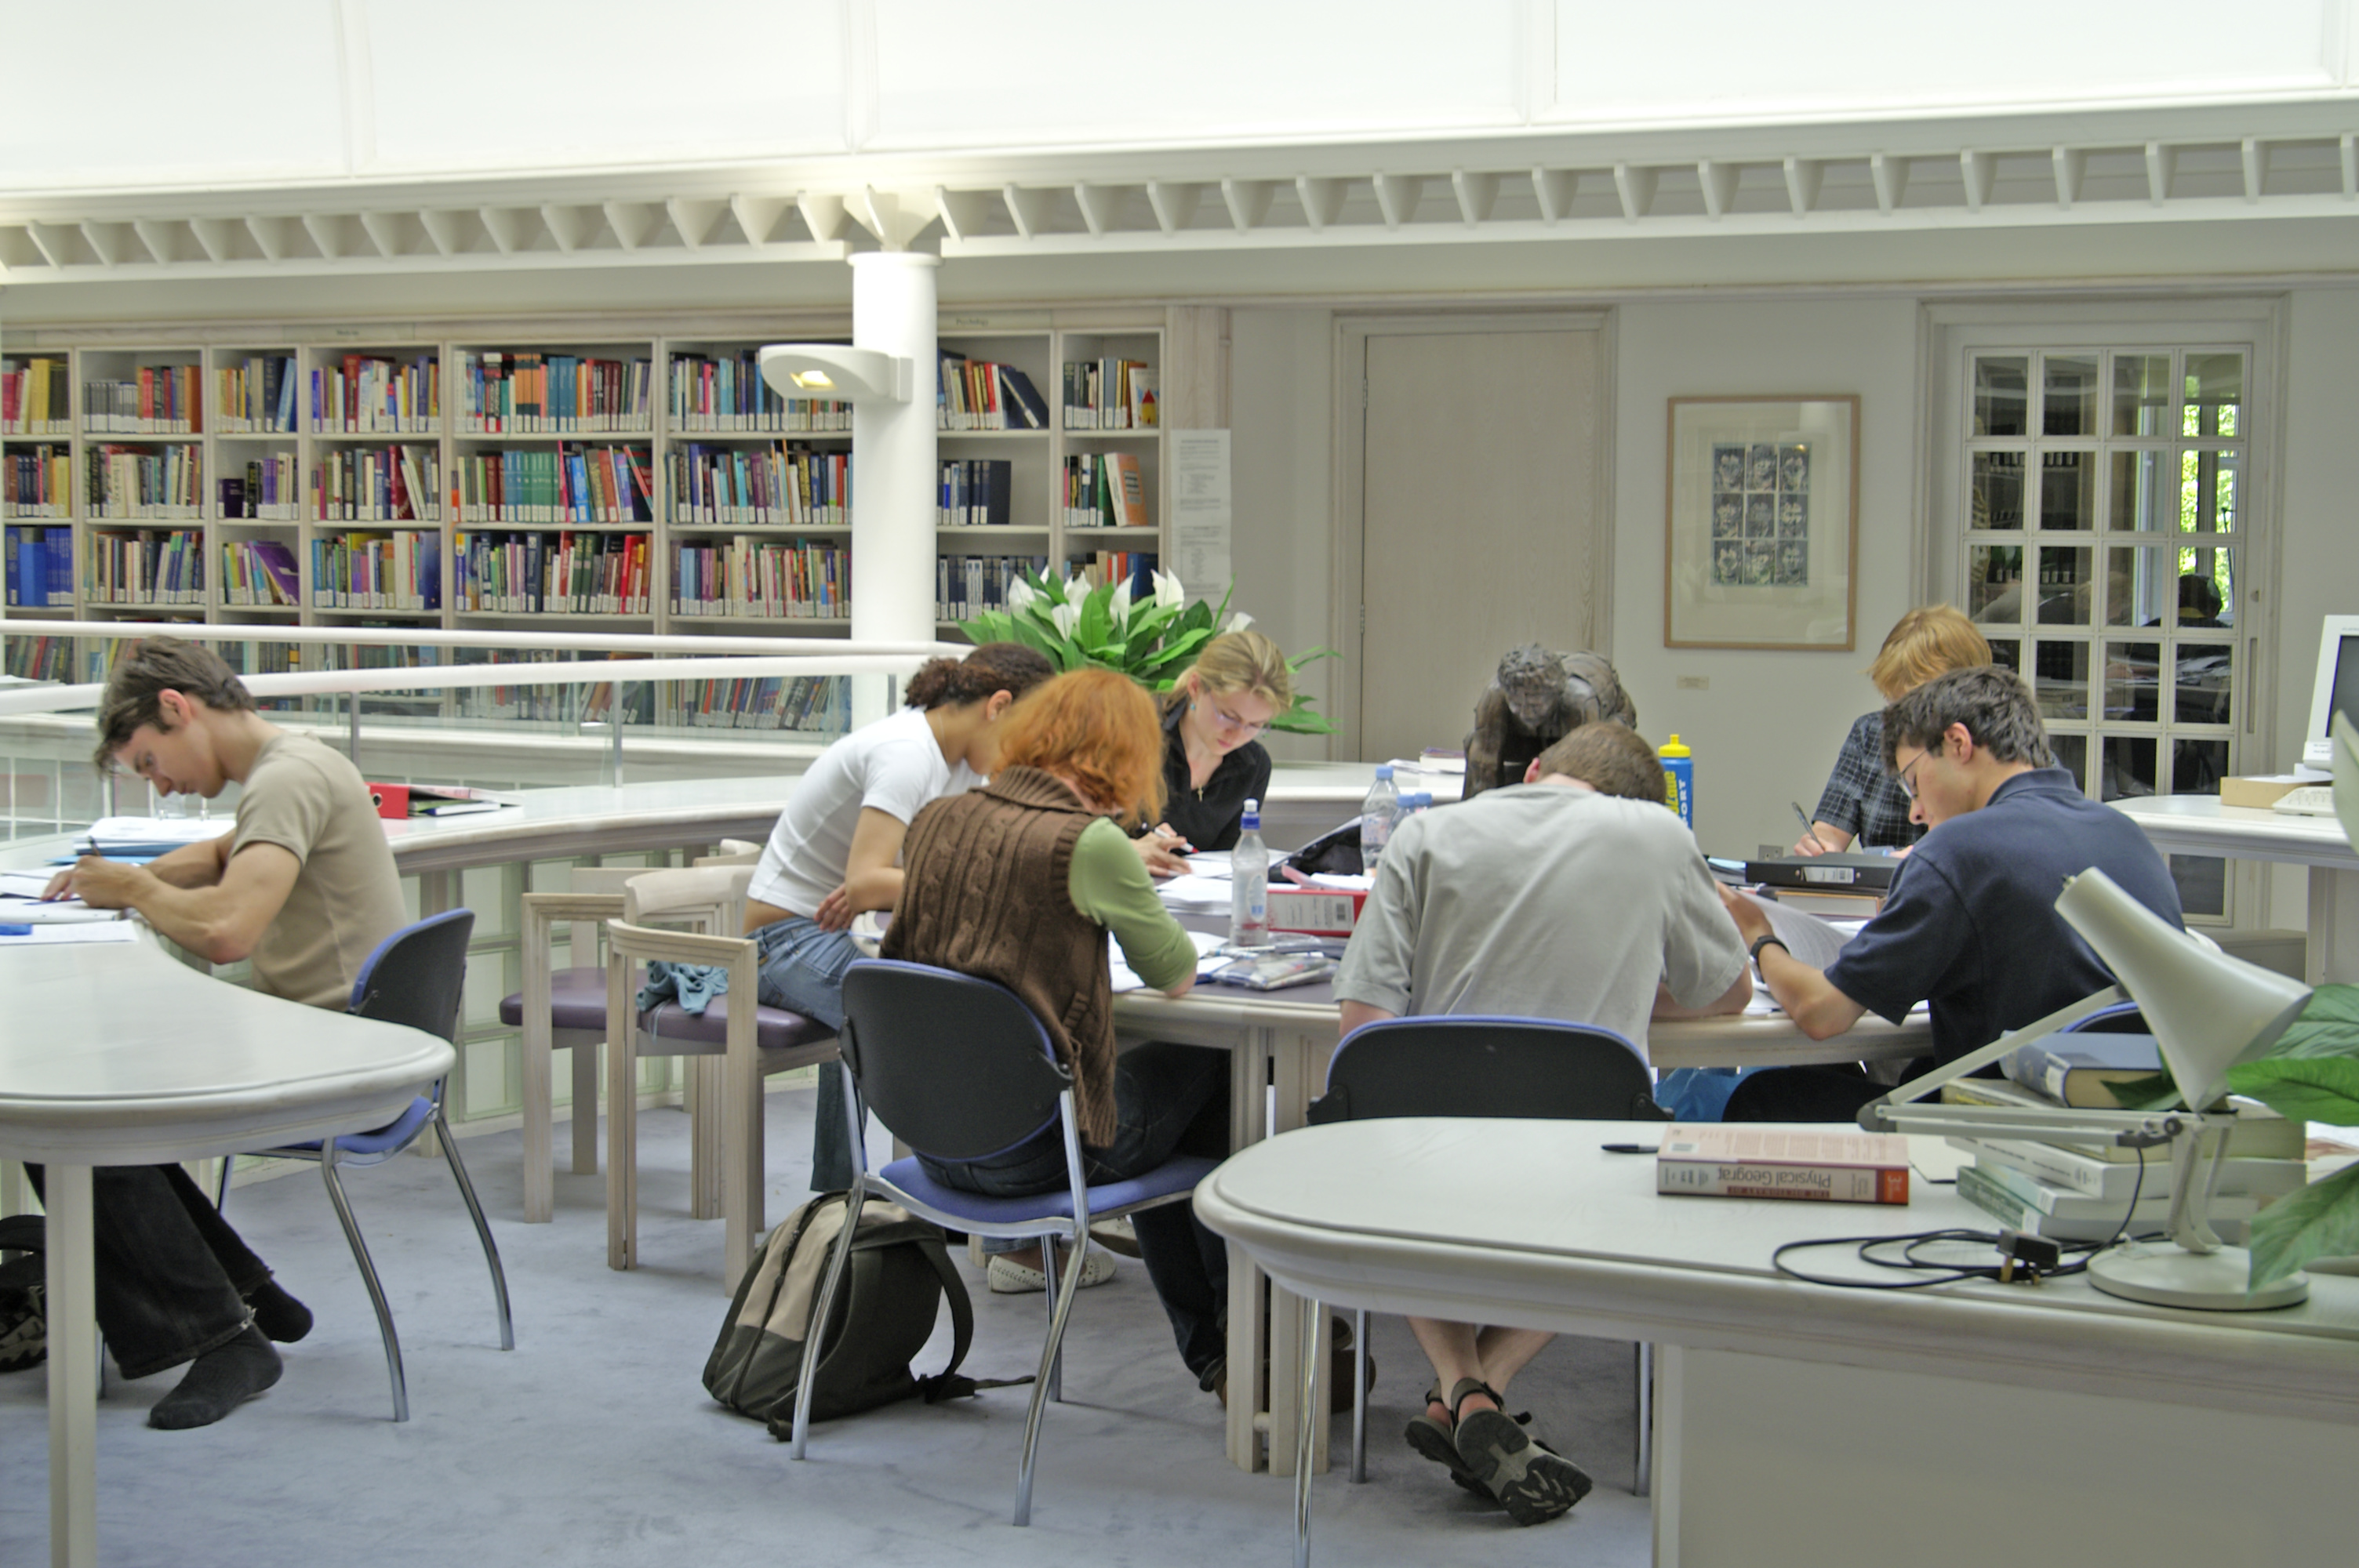 Students studying in Jesus College library: courtesy of Jesus College